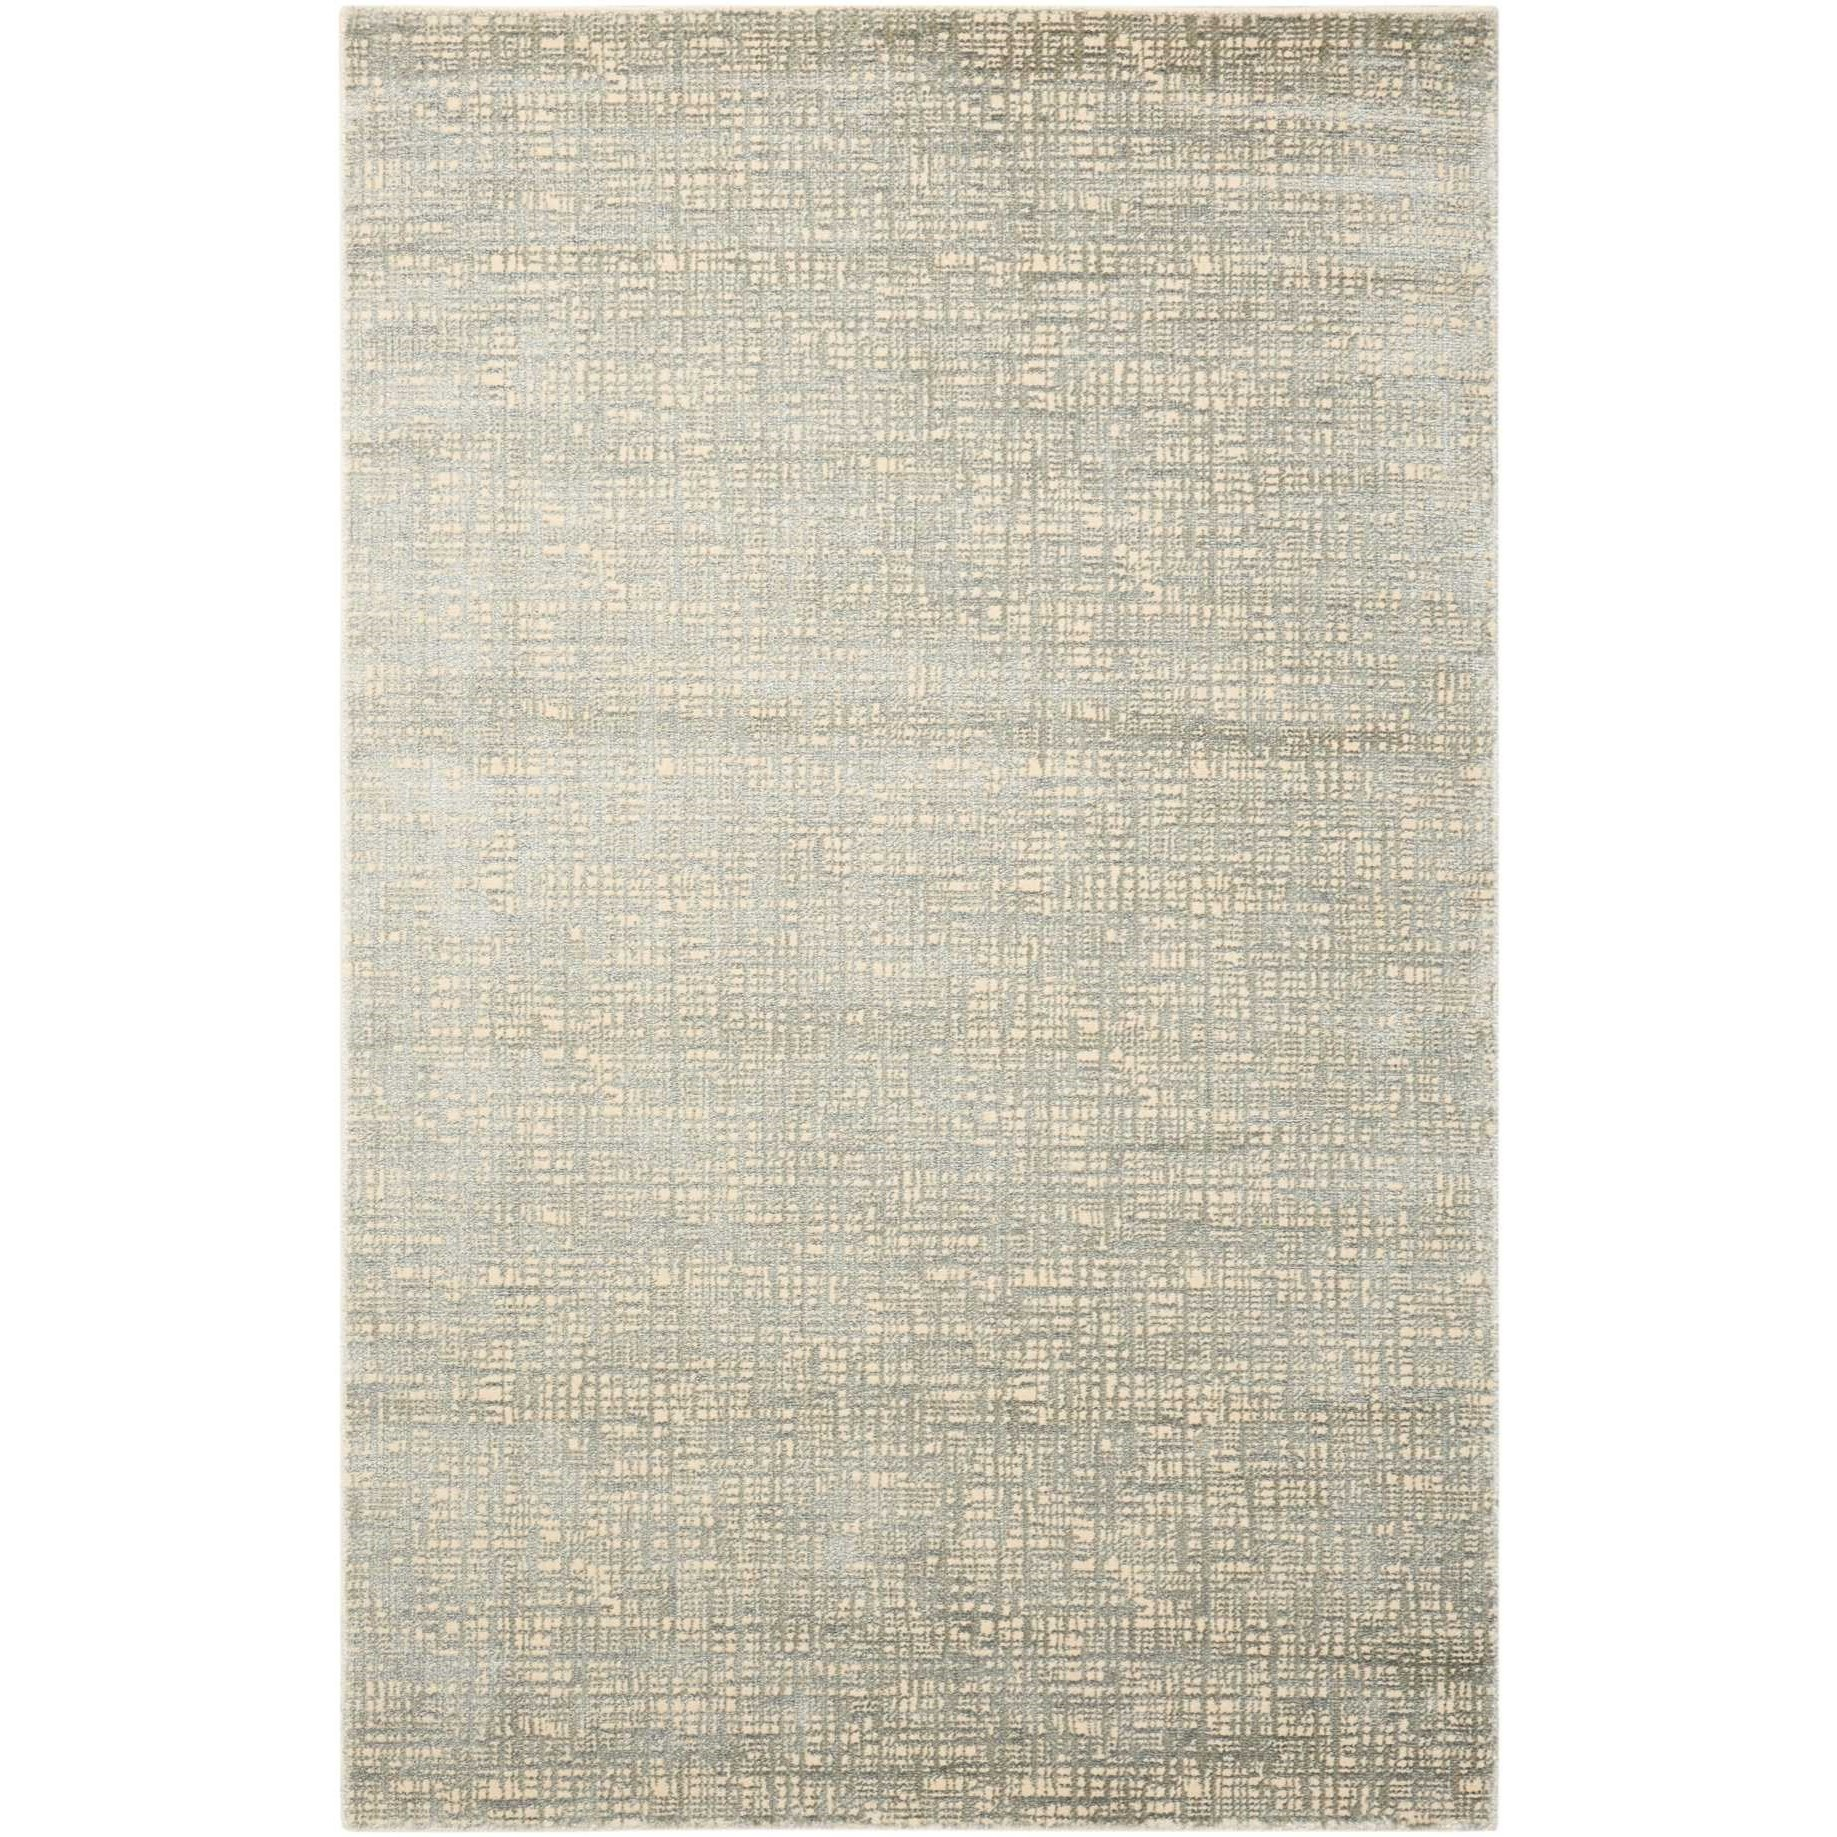 "Starlight 9'3"" x 12'9"" Sea Mist Rectangle Rug by Nourison at Home Collections Furniture"